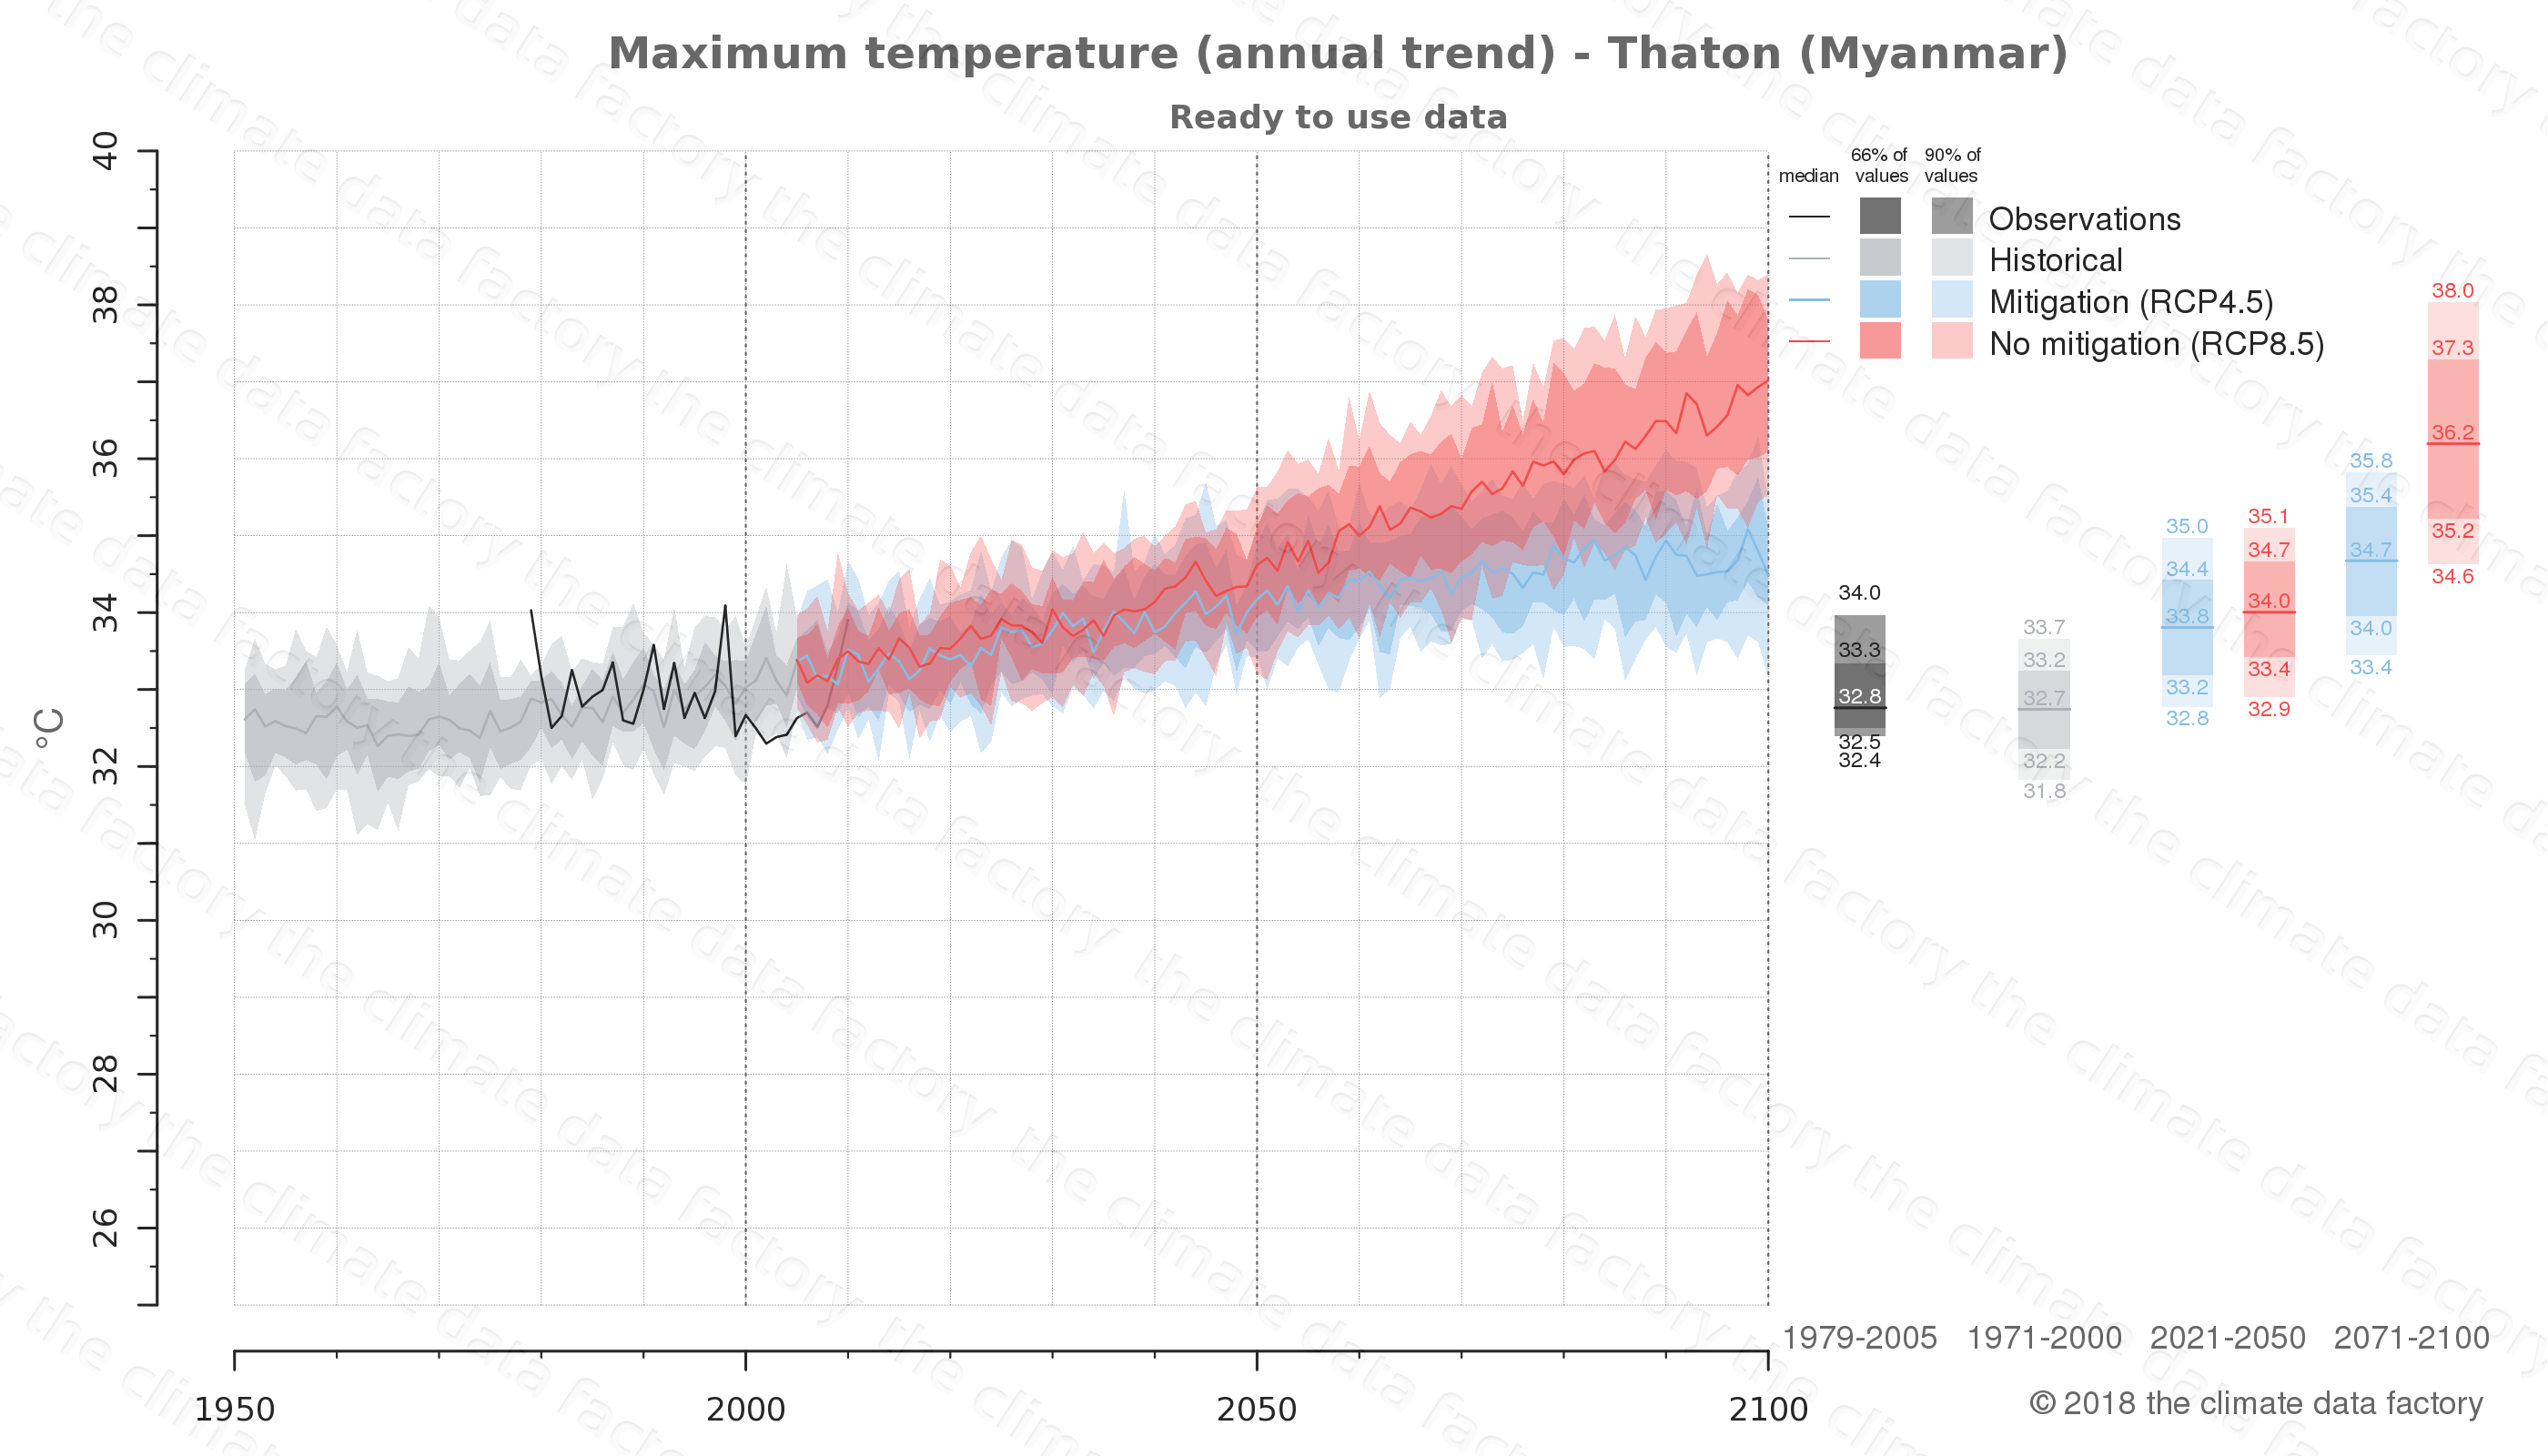 climate change data policy adaptation climate graph city data maximum-temperature thaton myanmar